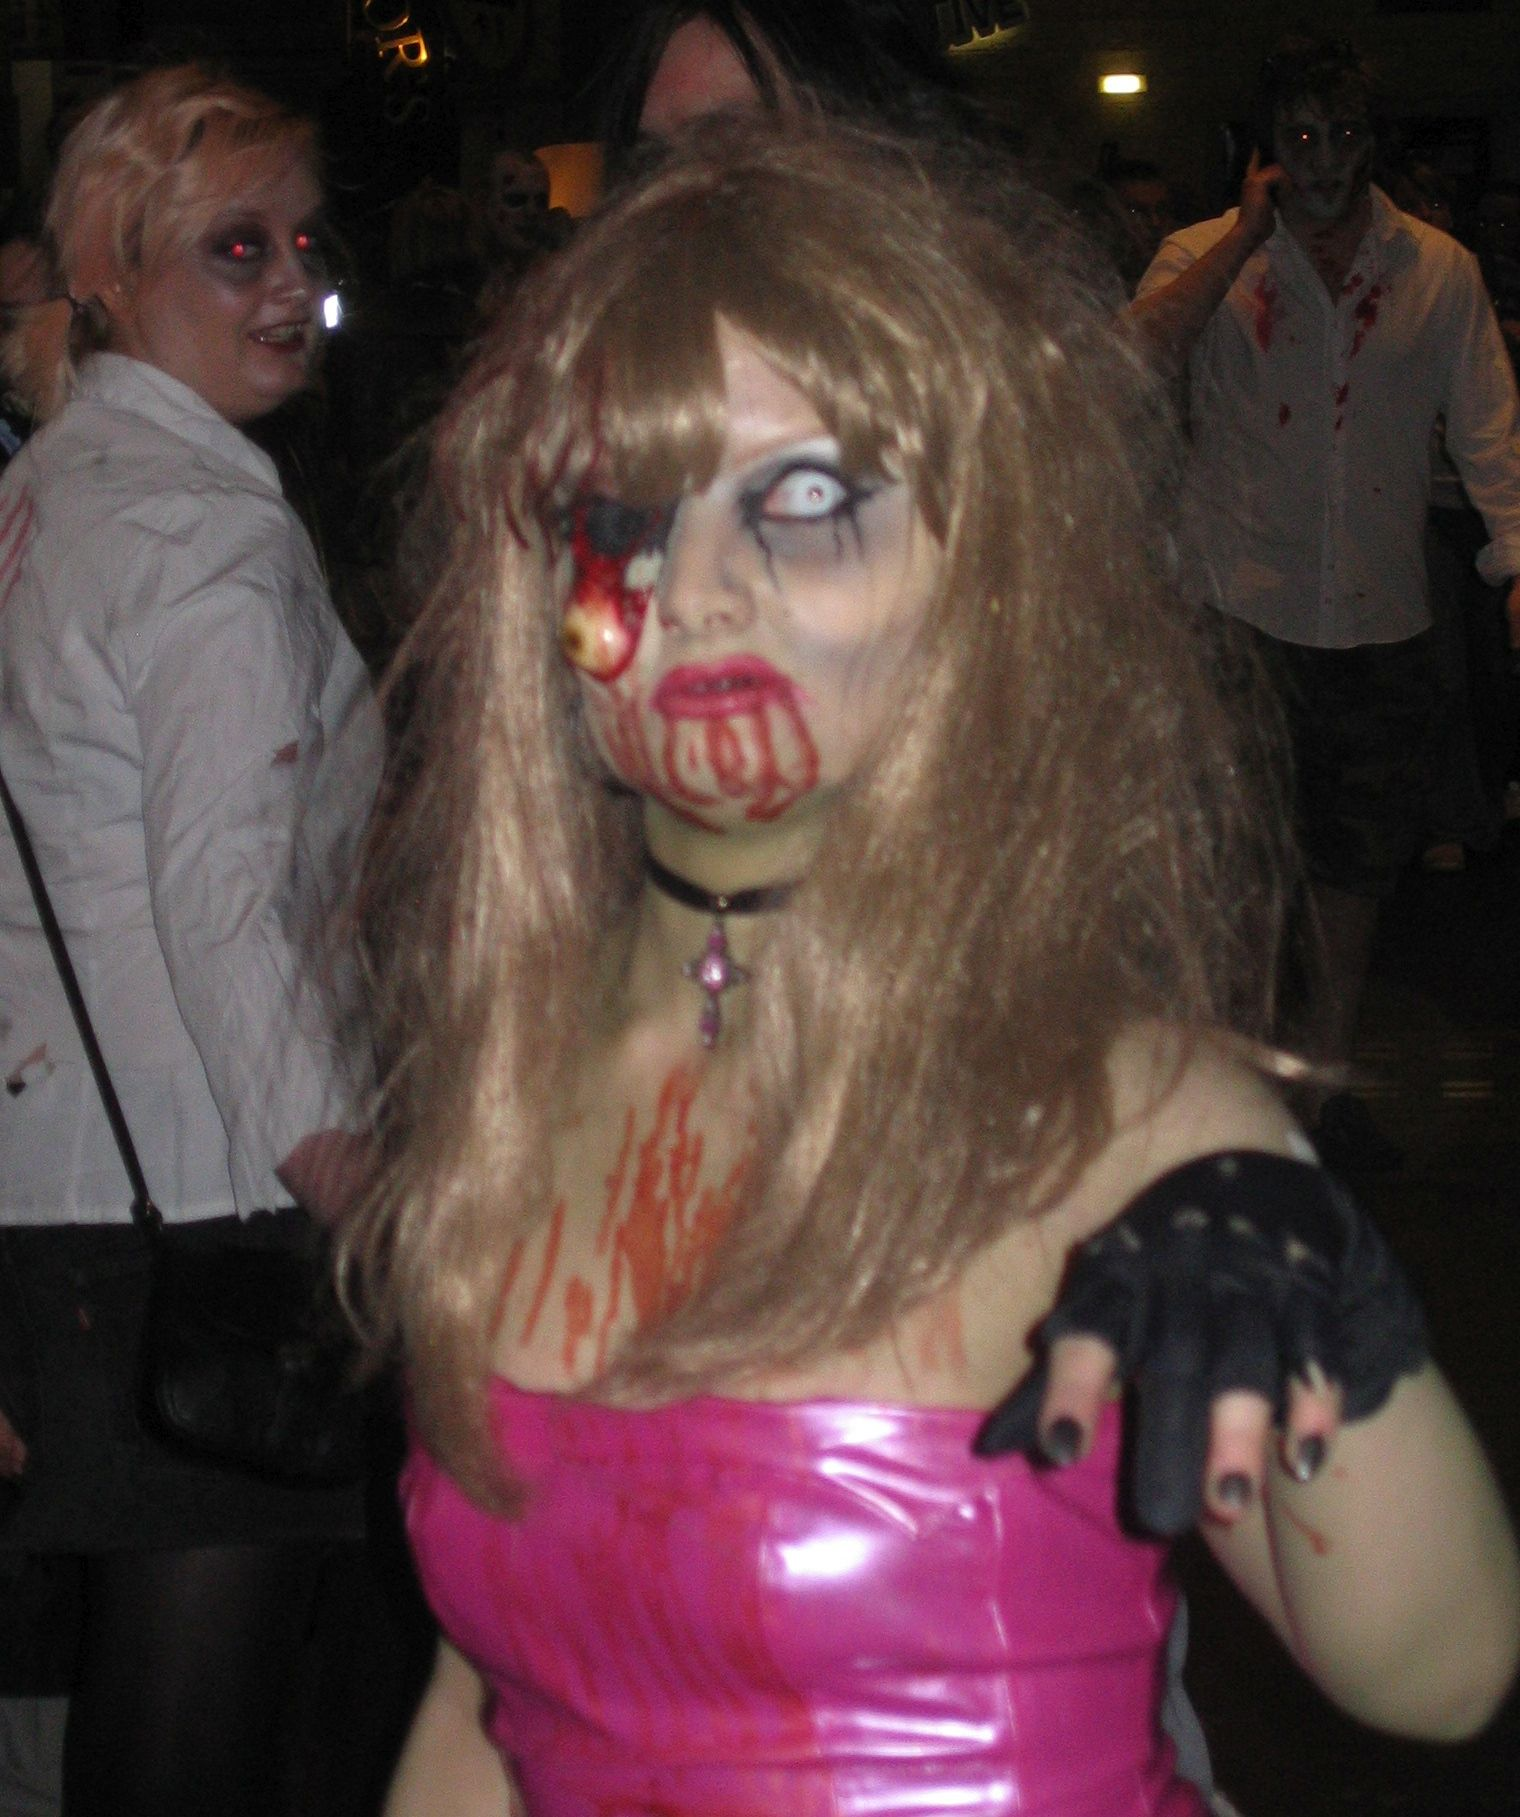 Photo taken by me – Morganna Bramah as a zombie girl in Manchester